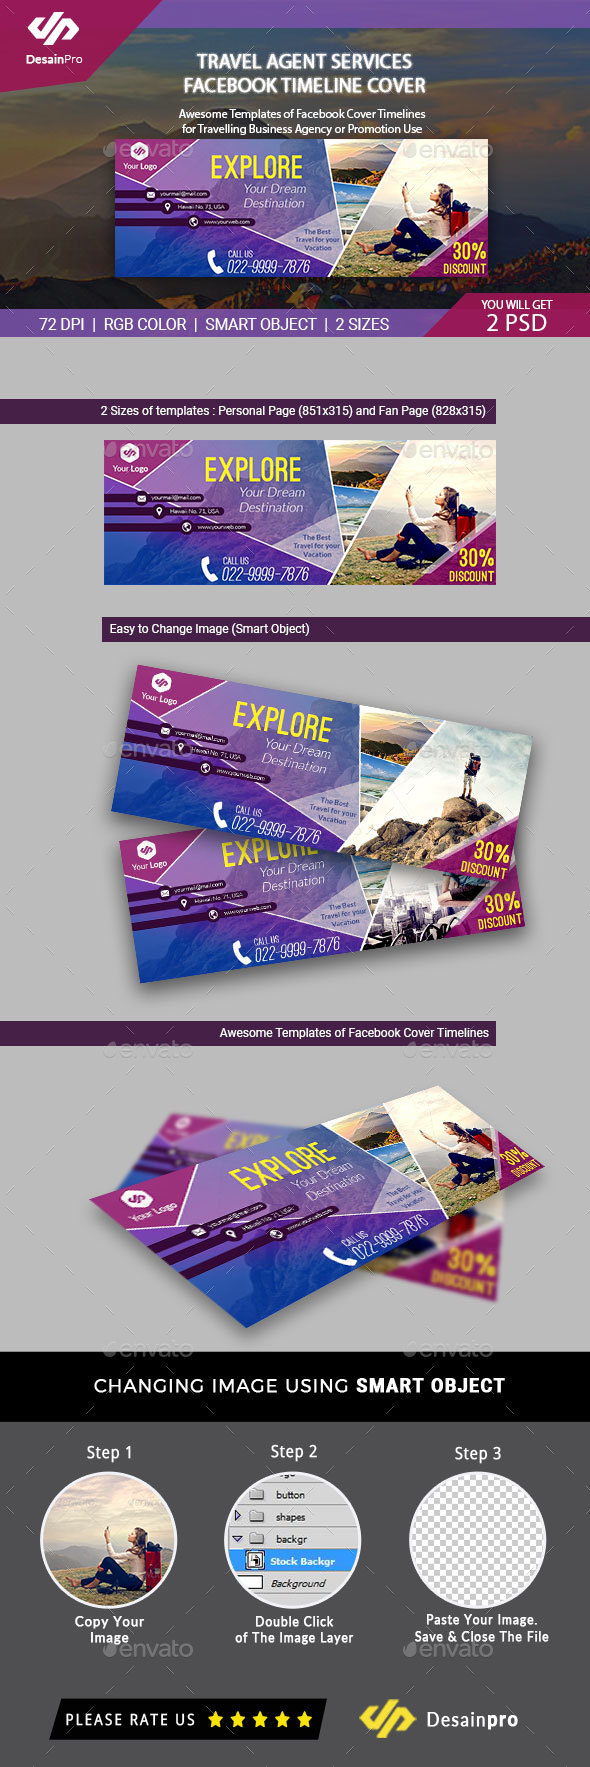 GraphicRiver Travel Agent FB Cover Timeline Template 20233553